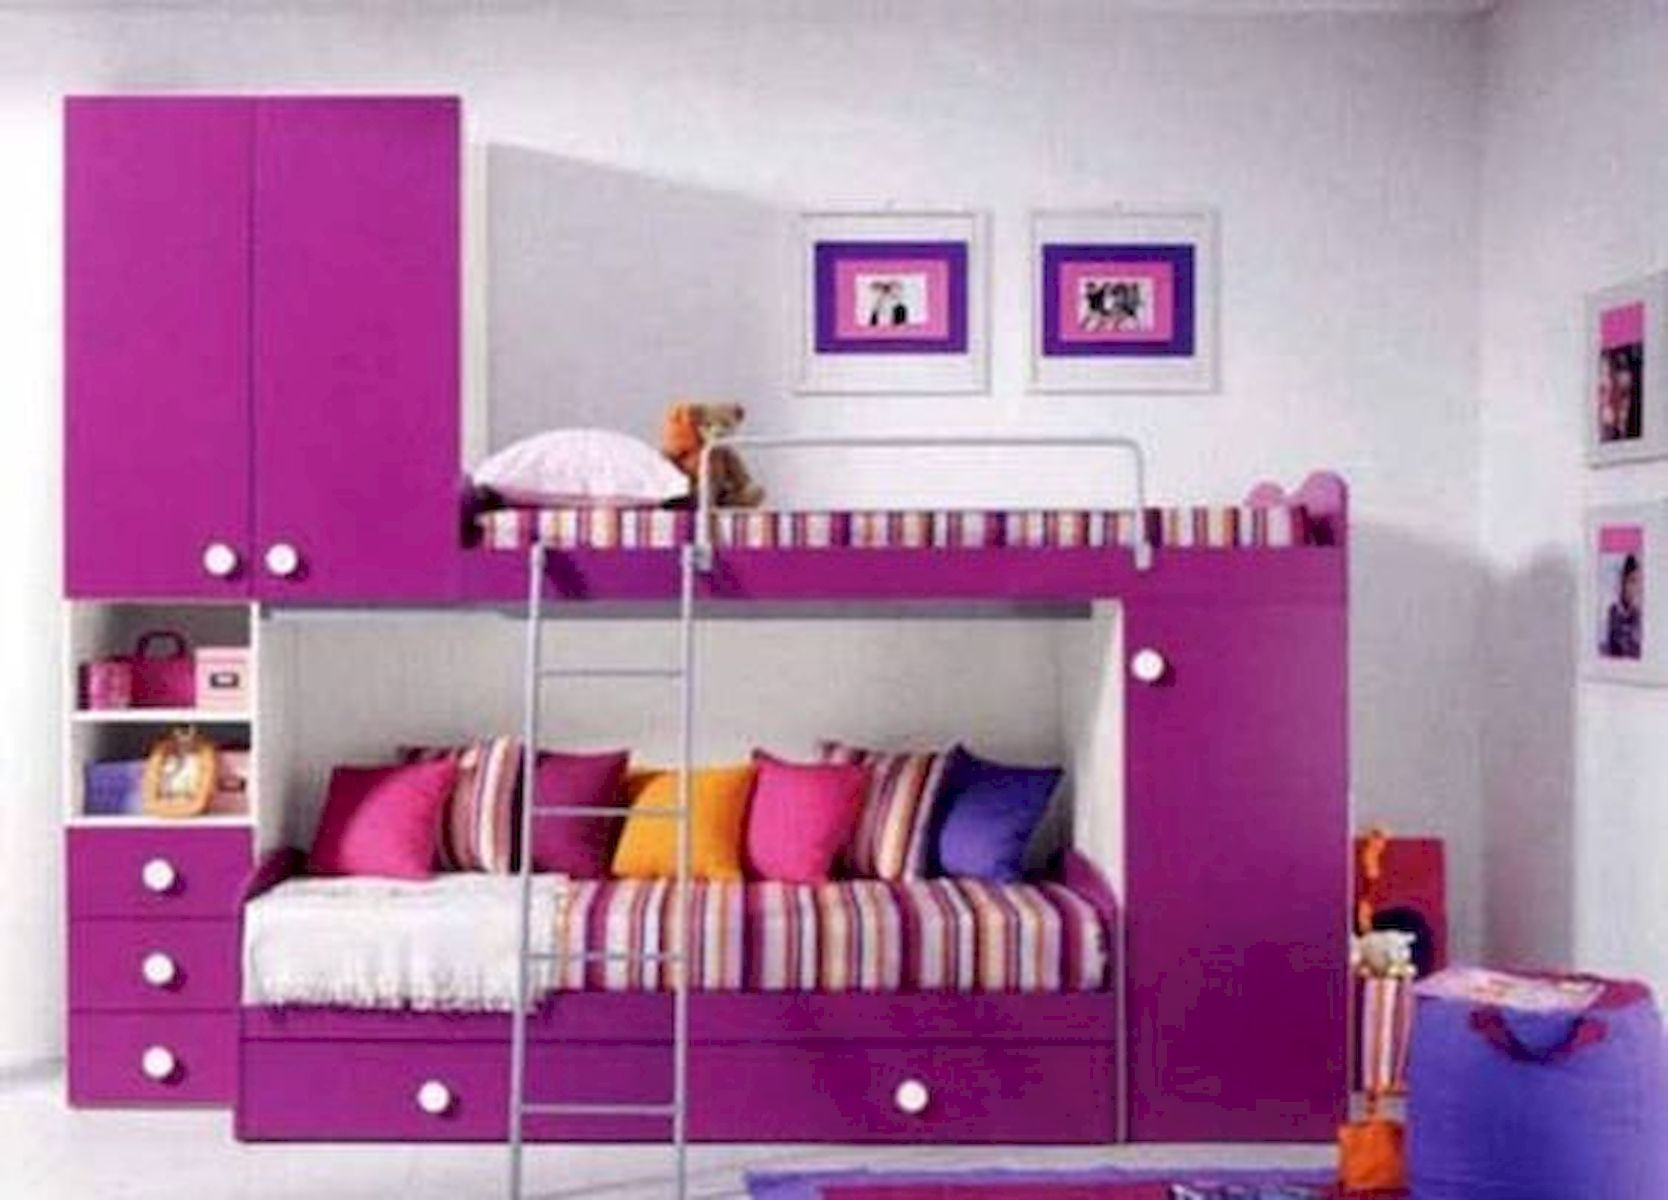 40 Cute Small Bedroom Design and Decor Ideas for Teenage Girl (38)